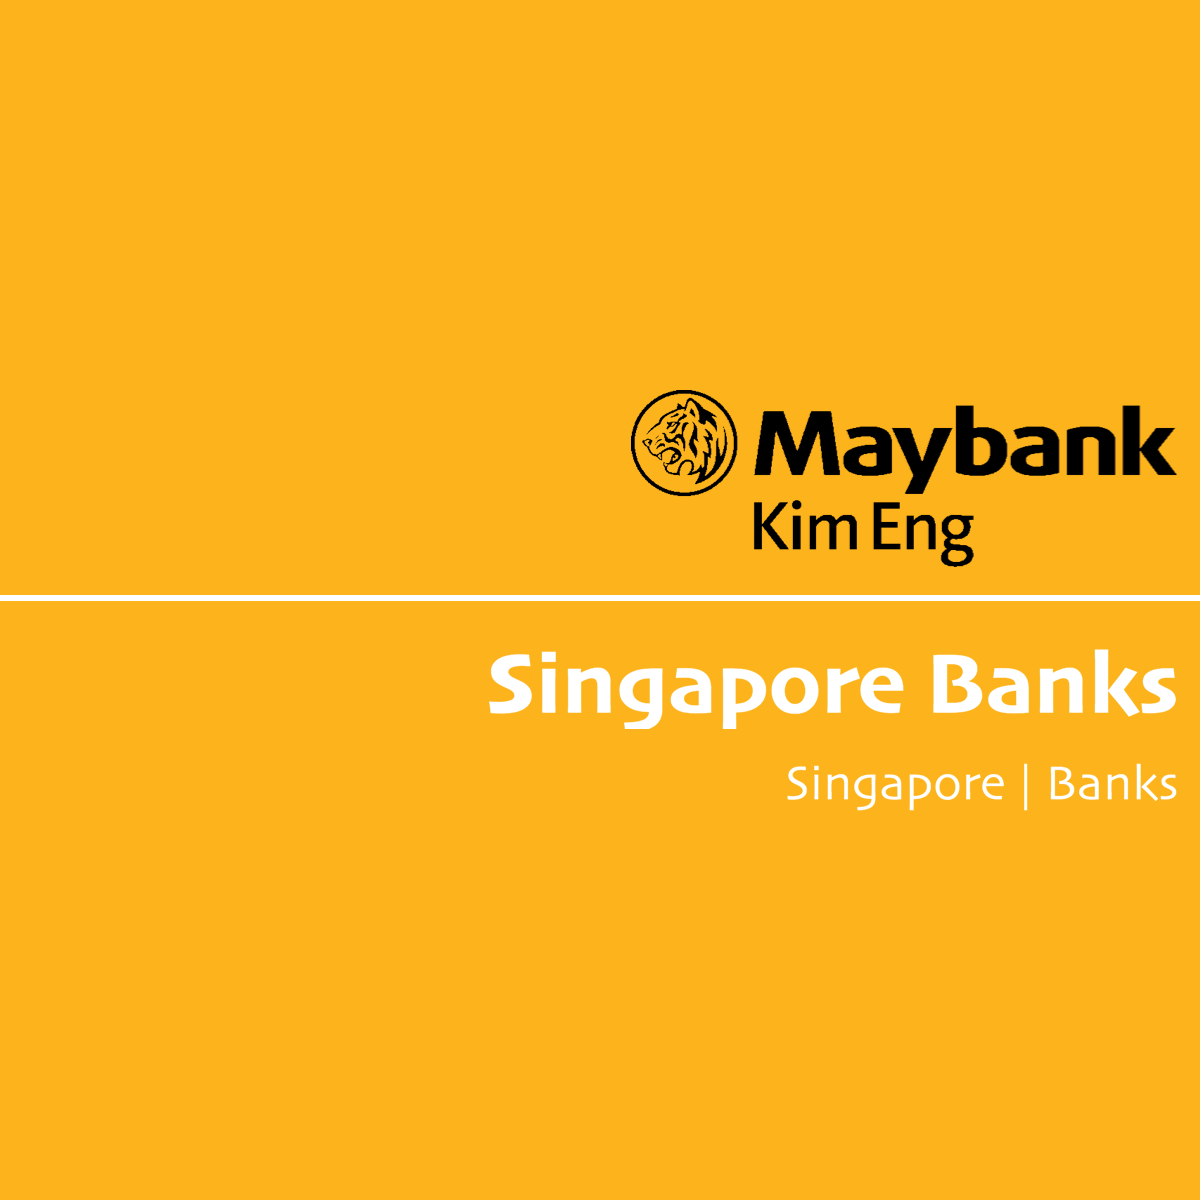 Singapore Banks - Maybank Kim Eng 2017-08-22: A Clearer Path